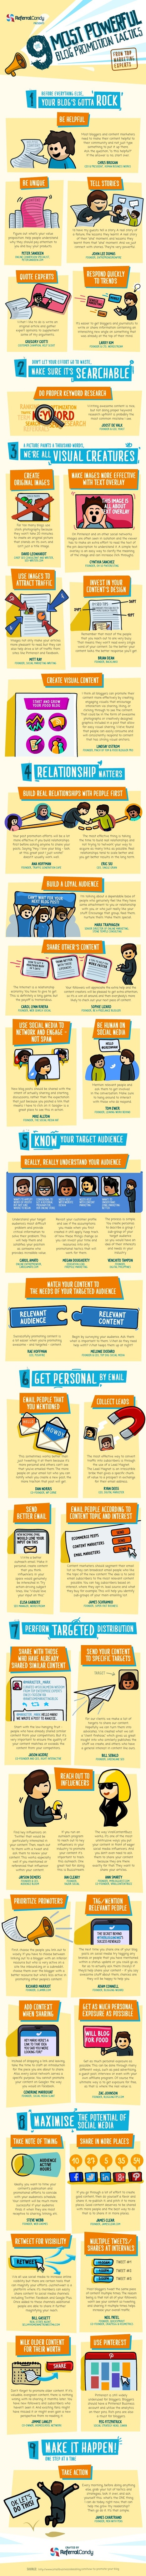 How to Promote Your Stories Effectively #Infographic | Social media enabling connected learning | Scoop.it